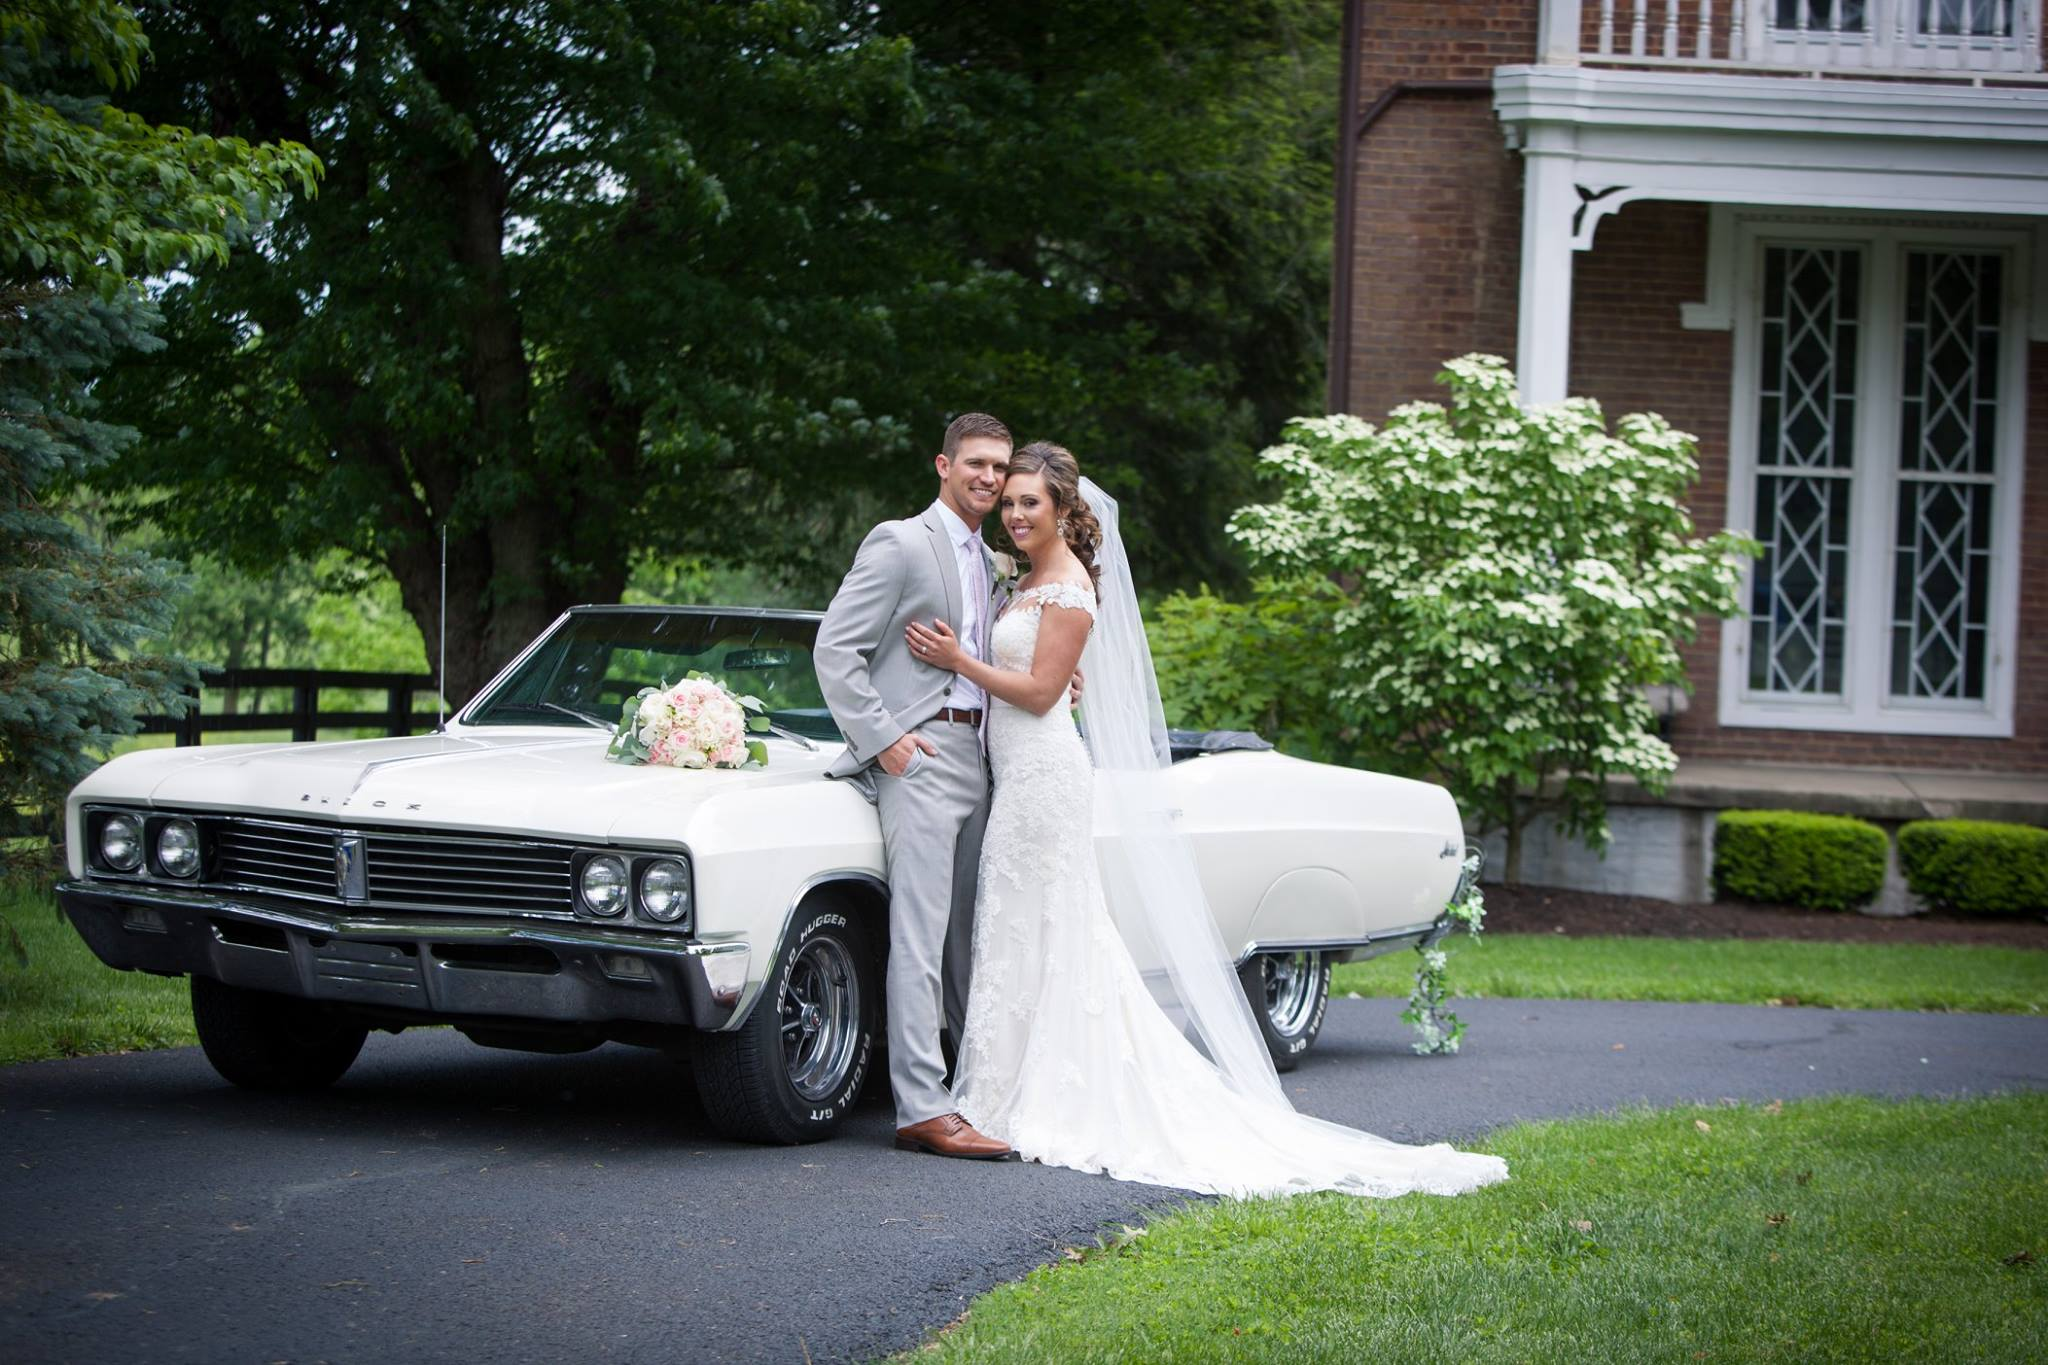 Bride & Groom posed with old car at warrenwood